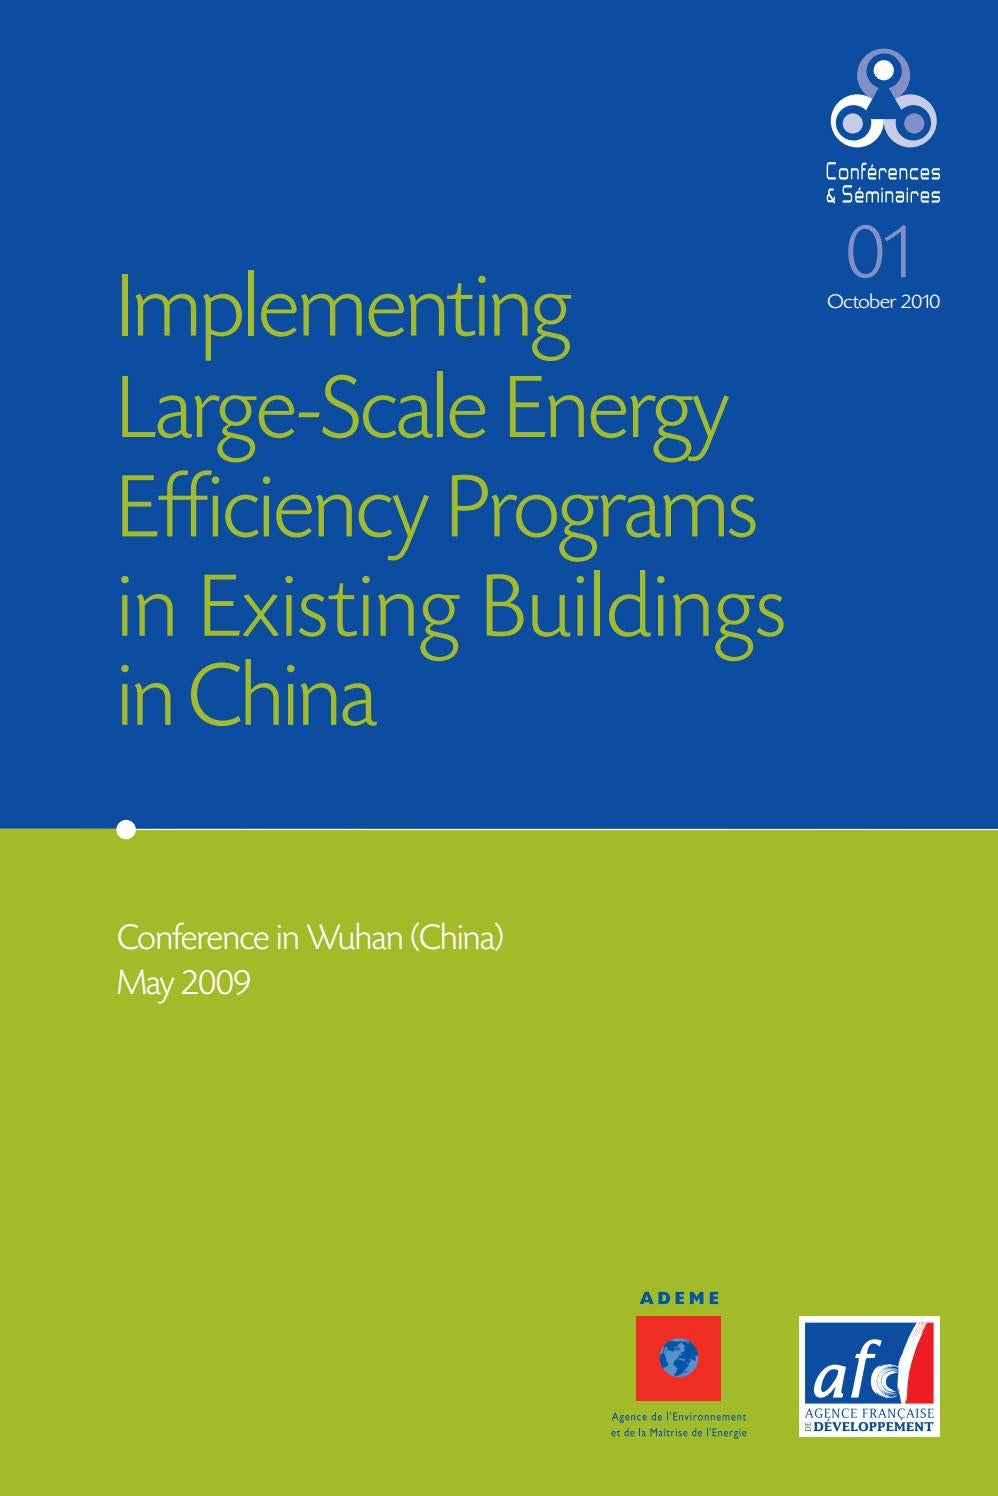 Implementing Large-Scale Energy Efficiency Programs in